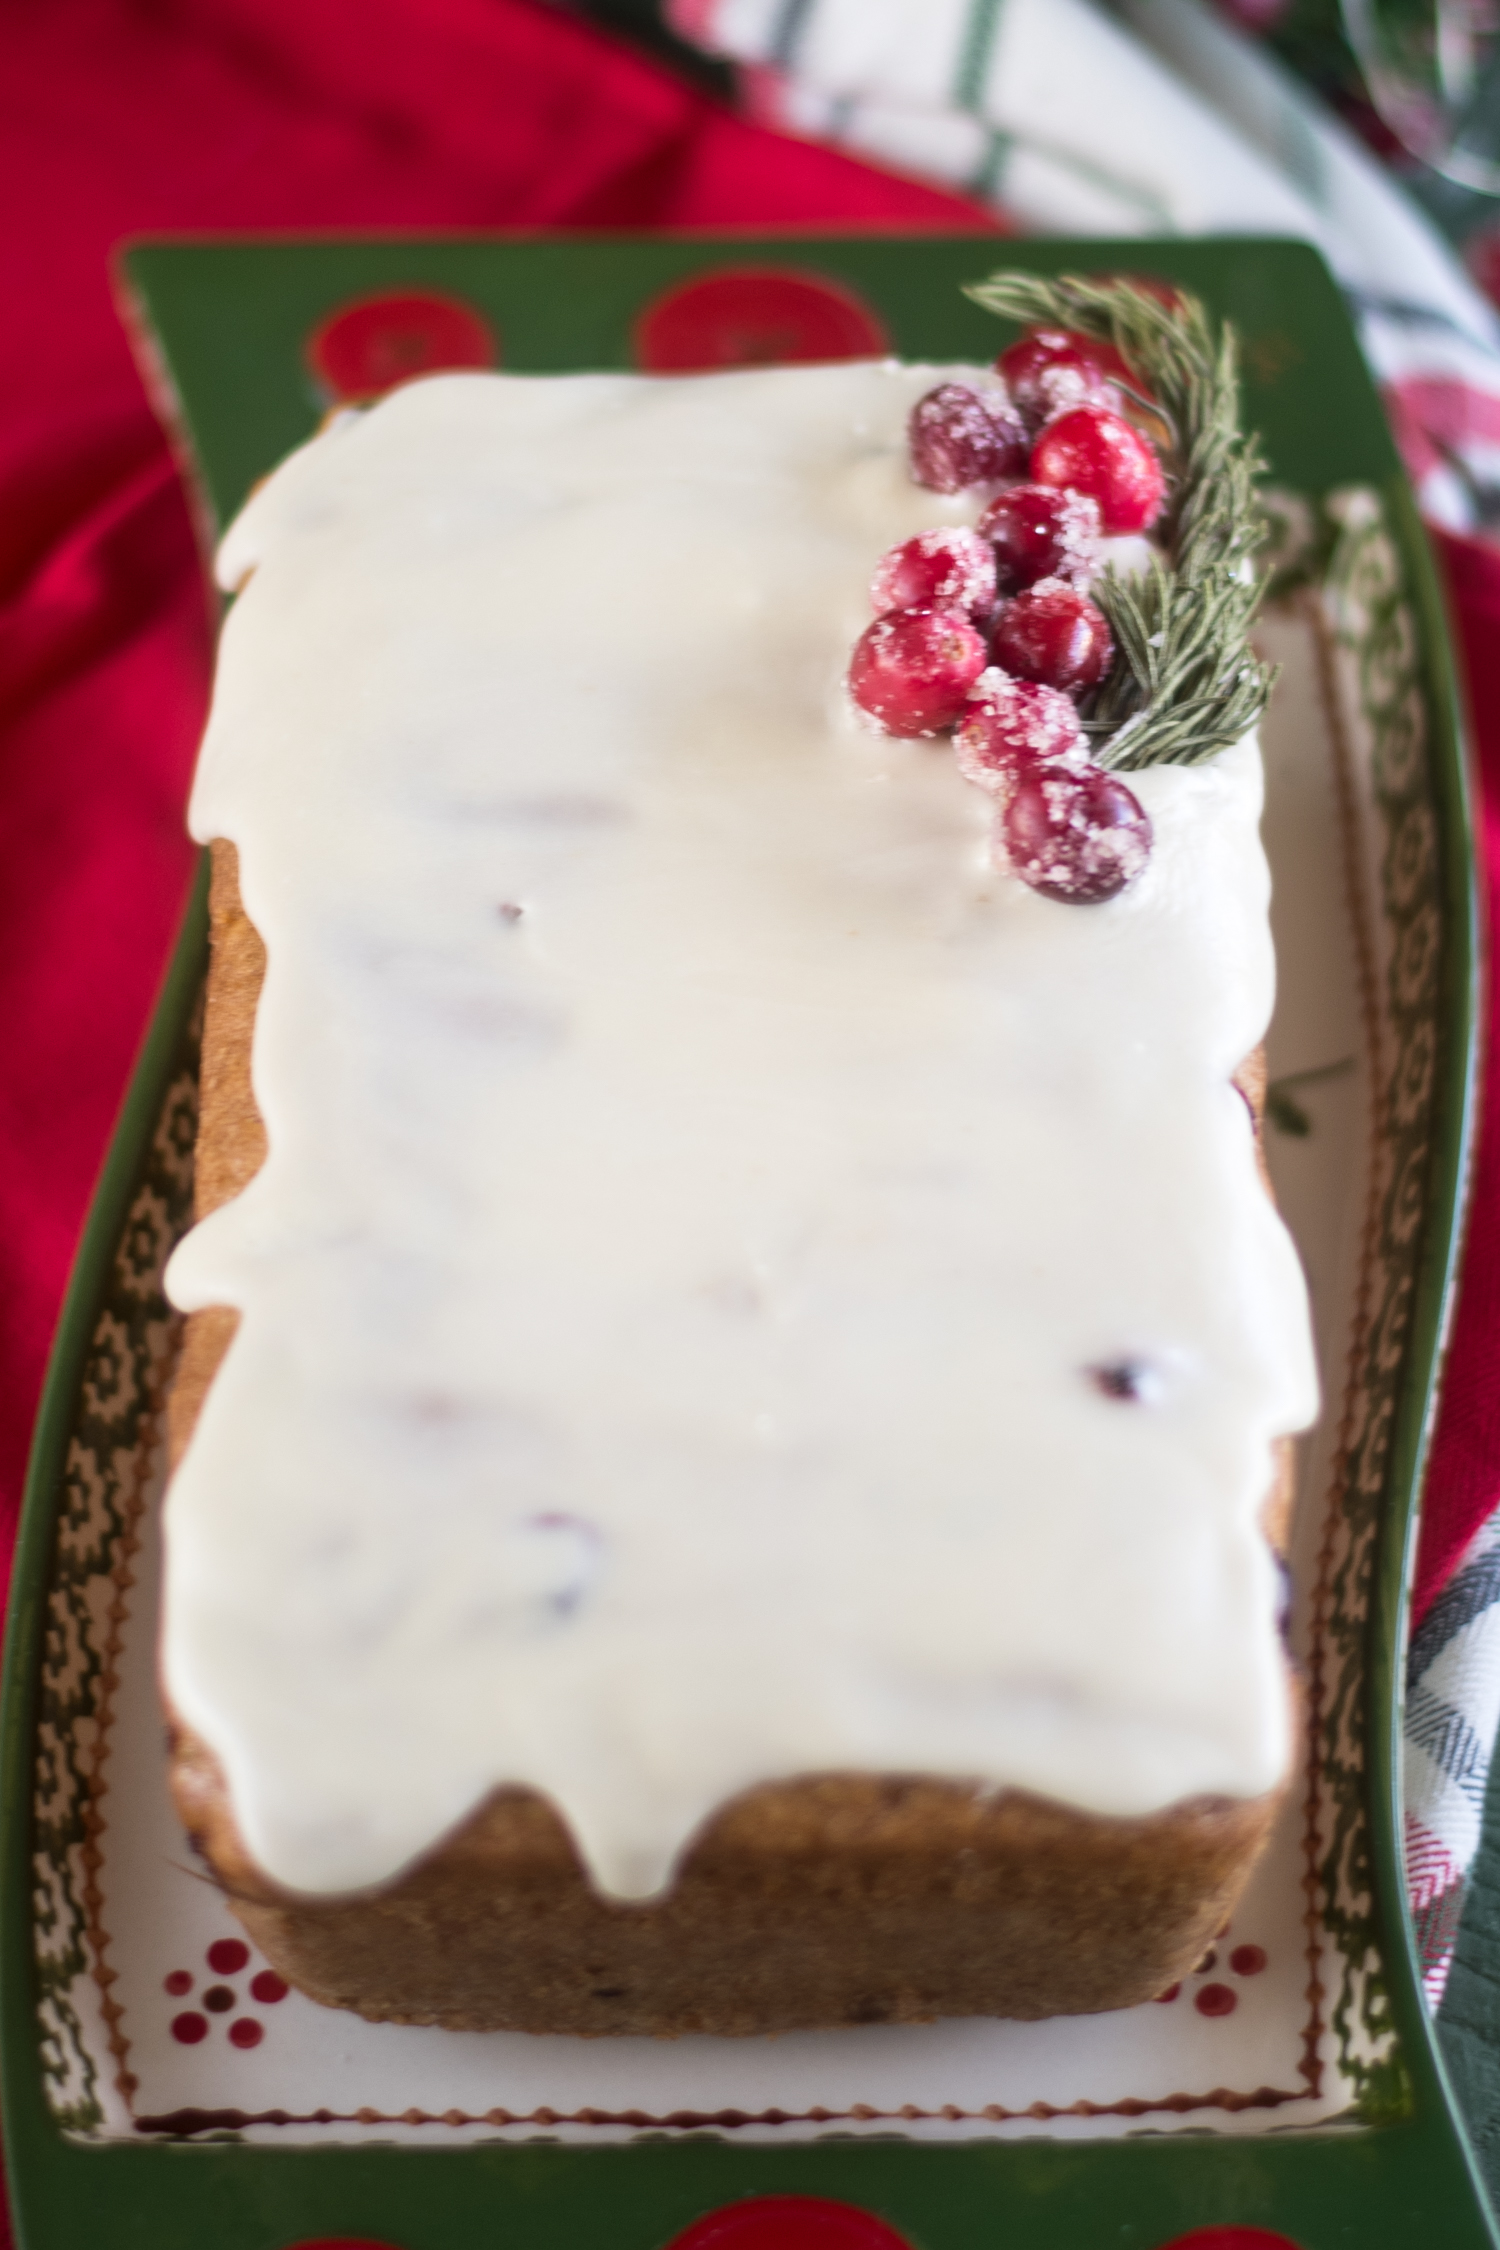 This Vegan Cranberry Orange Pound Cake is moist, flavorful, and will soon become a favorite to bake during the holidays and winter months. #Vegan #dessert #recipes #Christmas #holidays